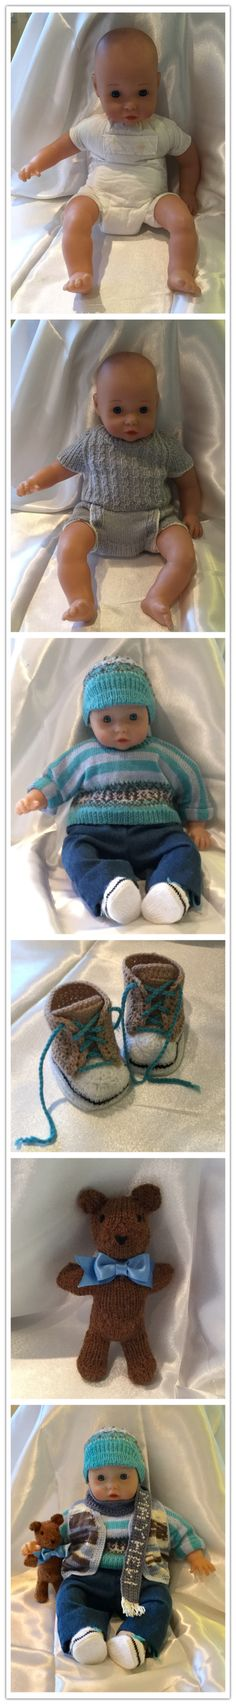 CAROL CHARNOCK CREATION- Second-hand doll, dressed for a charity raffle at the Mayhew Animal Home - he is called Baby Martin